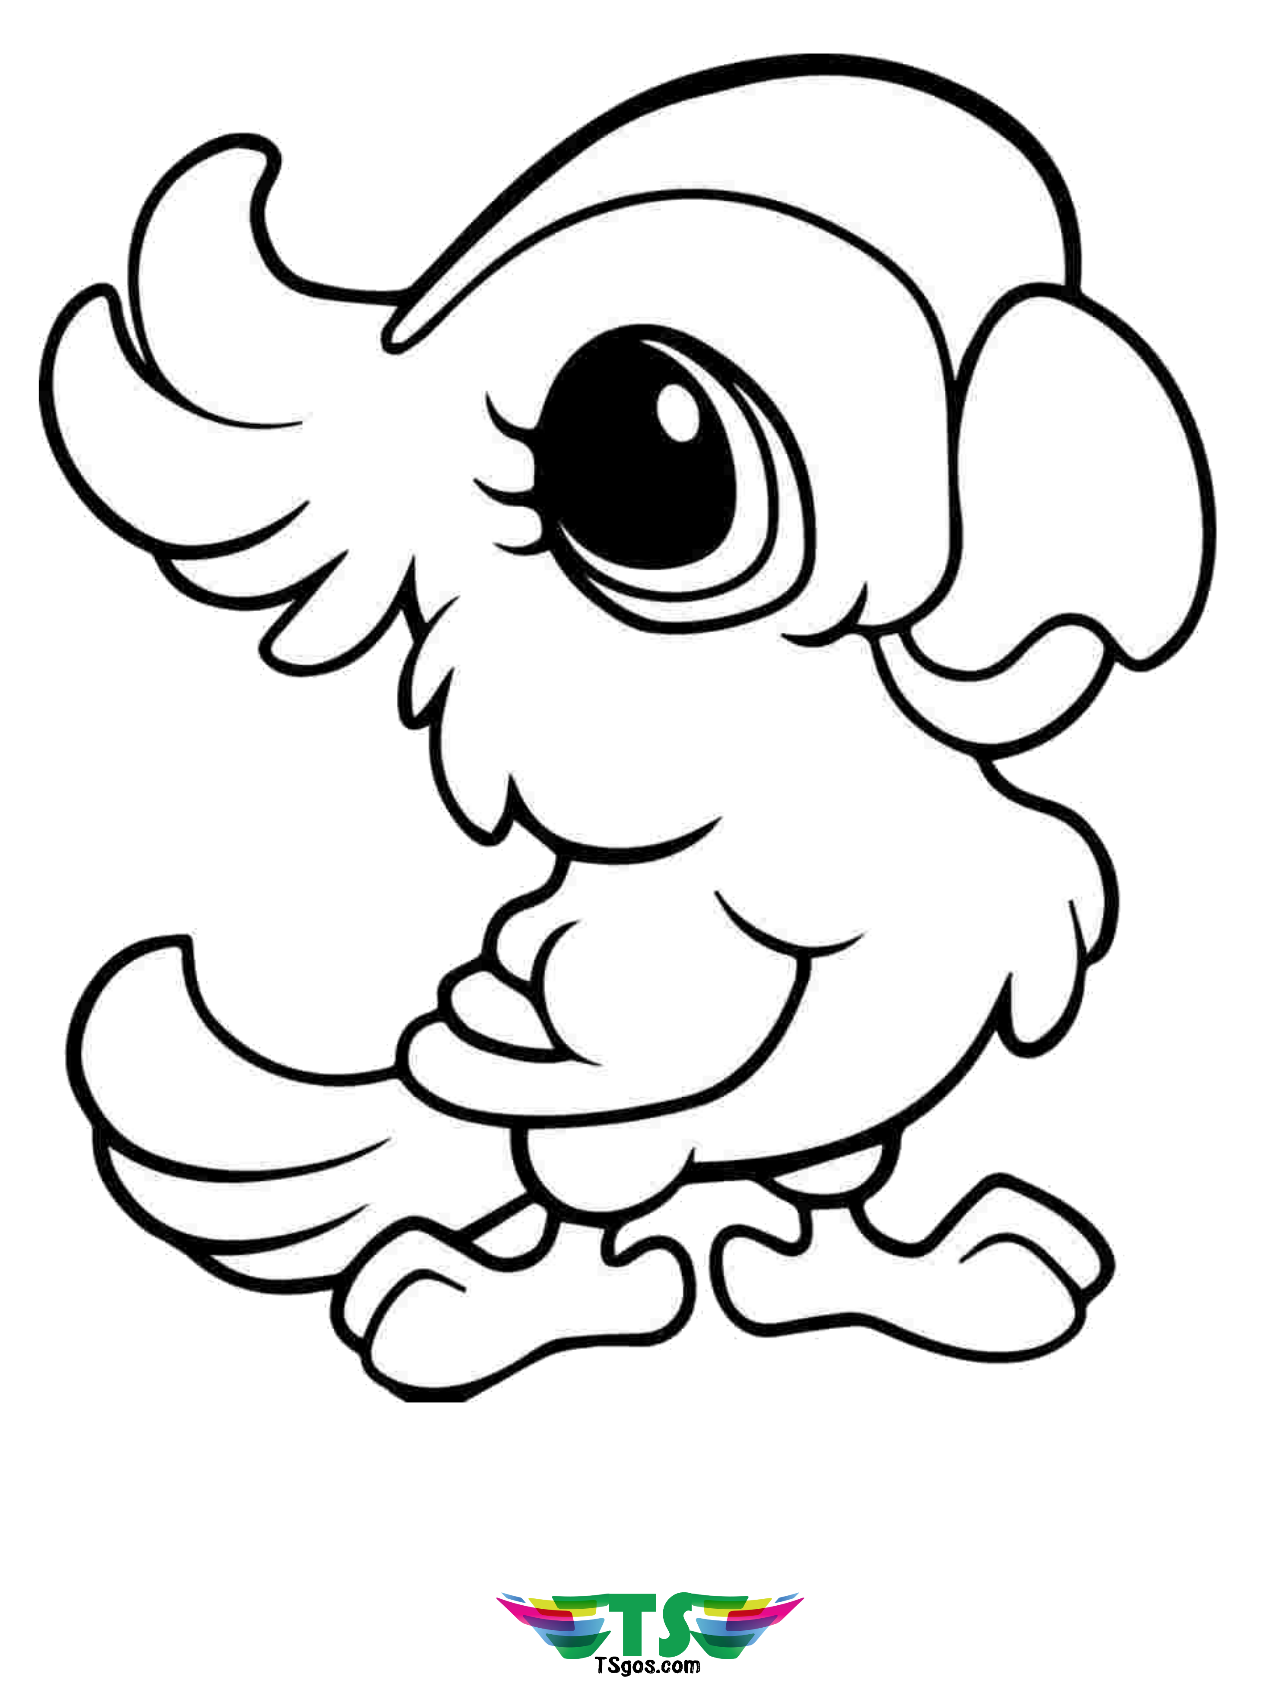 birds coloring pages birds for kids birds kids coloring pages pages coloring birds